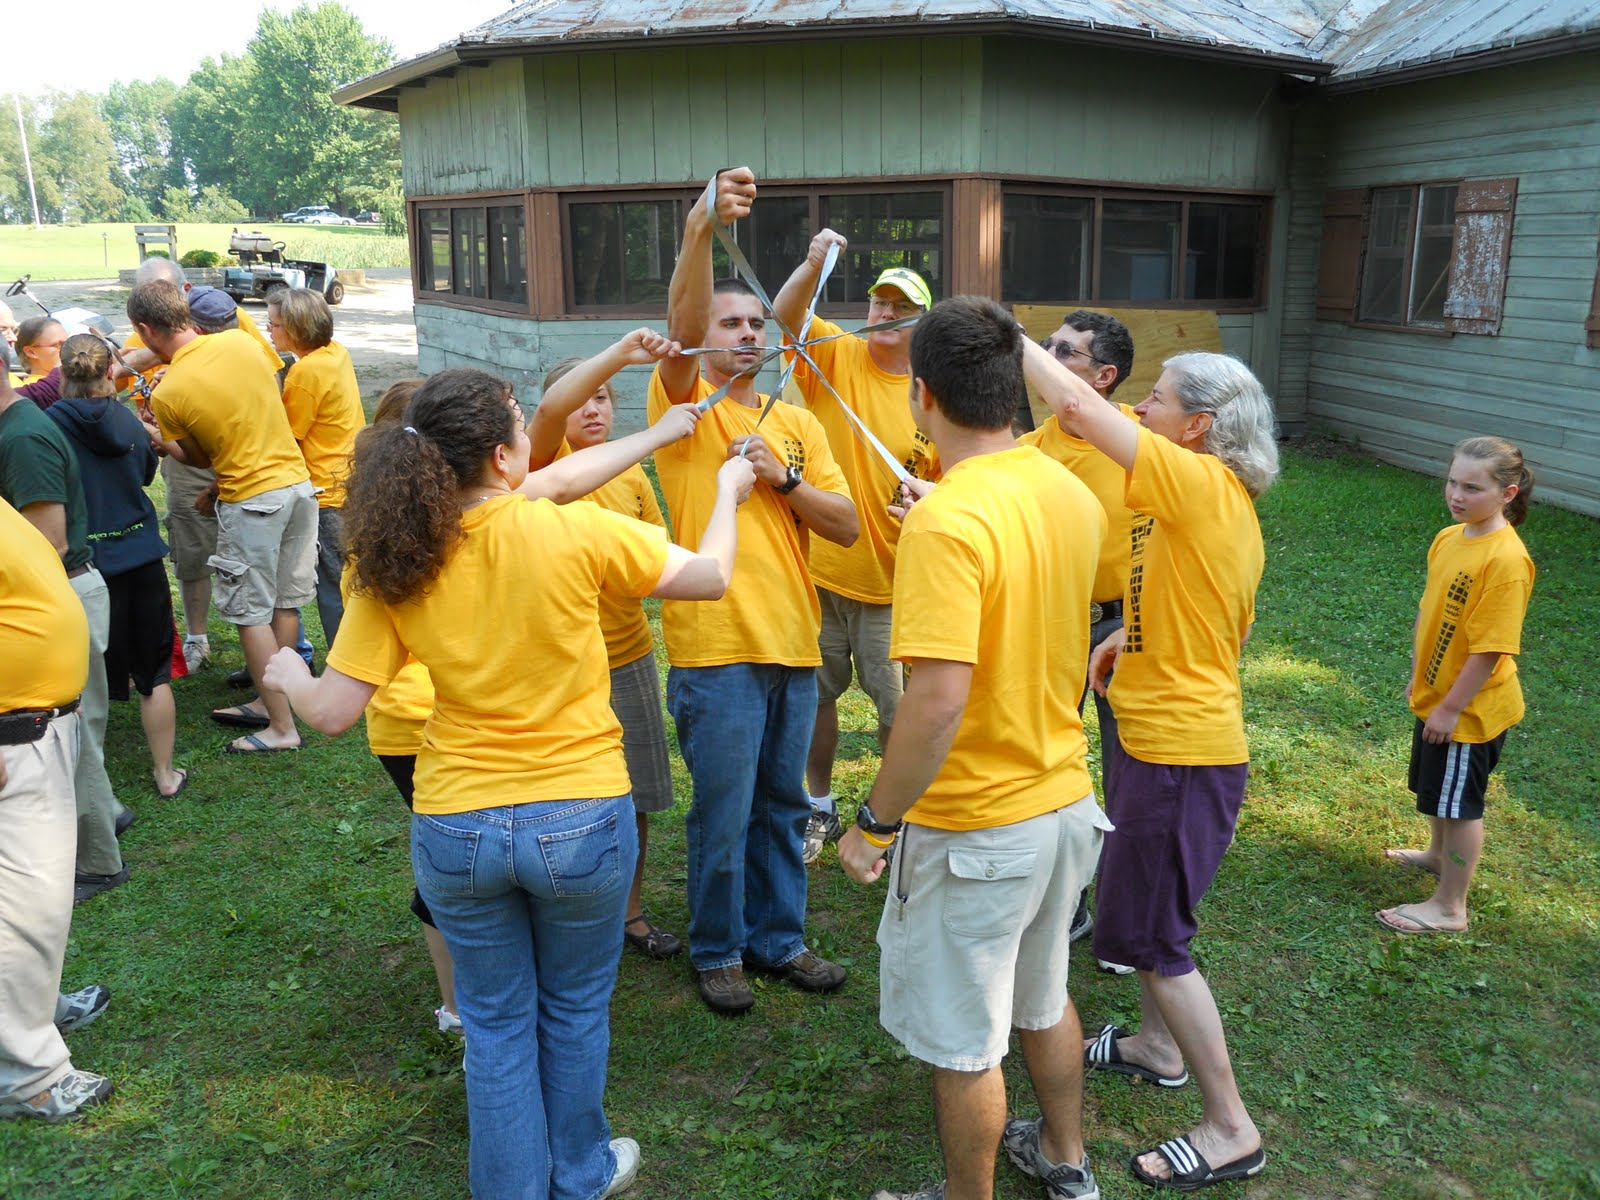 Teen team building camps in il has touched